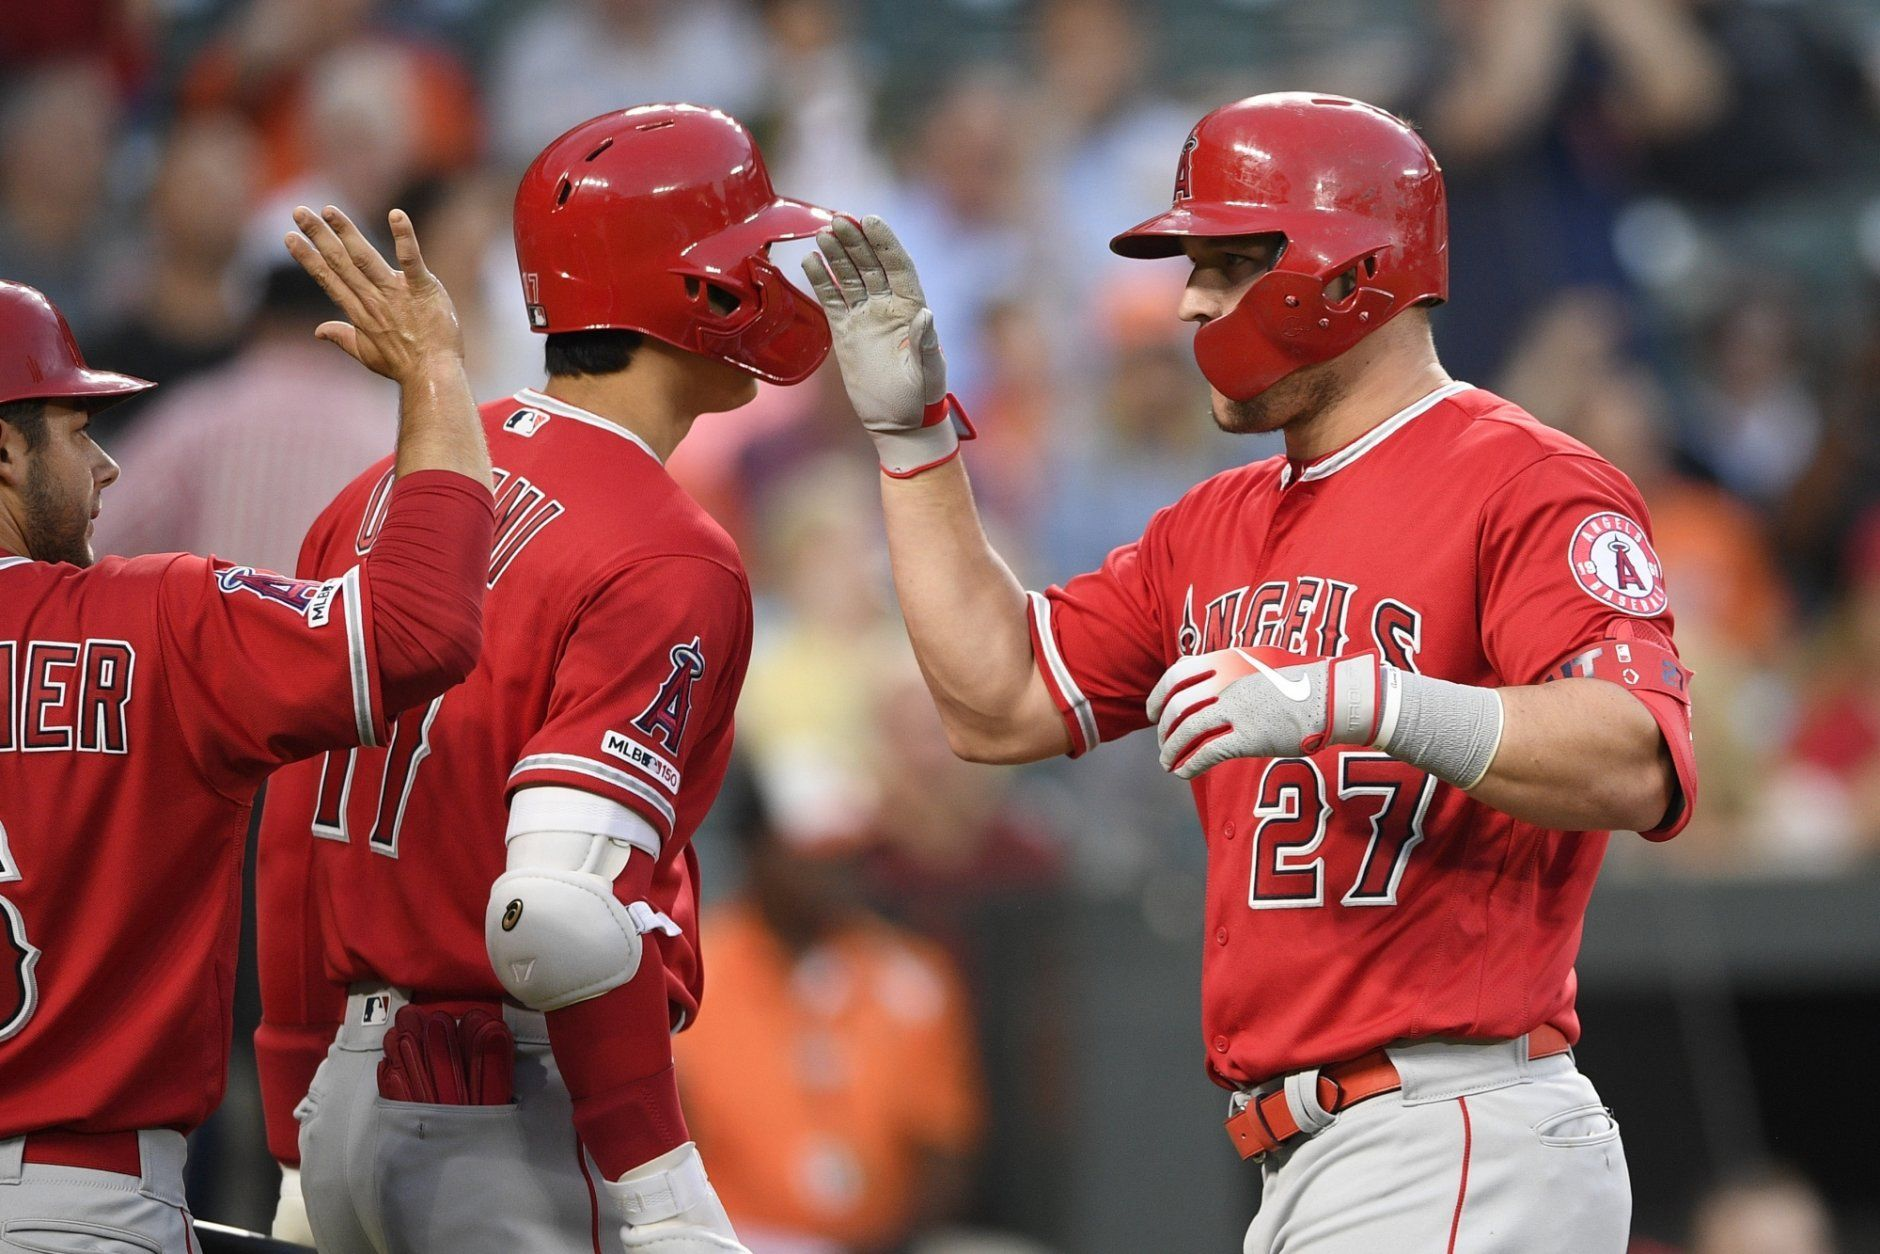 Los Angeles Angels' Mike Trout (27) celebrates his two-run home run with Shohei Ostani, center, of Japan, and David Fletcher, left, during the third inning of the team's baseball game against the Baltimore Orioles, Friday, May 10, 2019, in Baltimore. (AP Photo/Nick Wass)